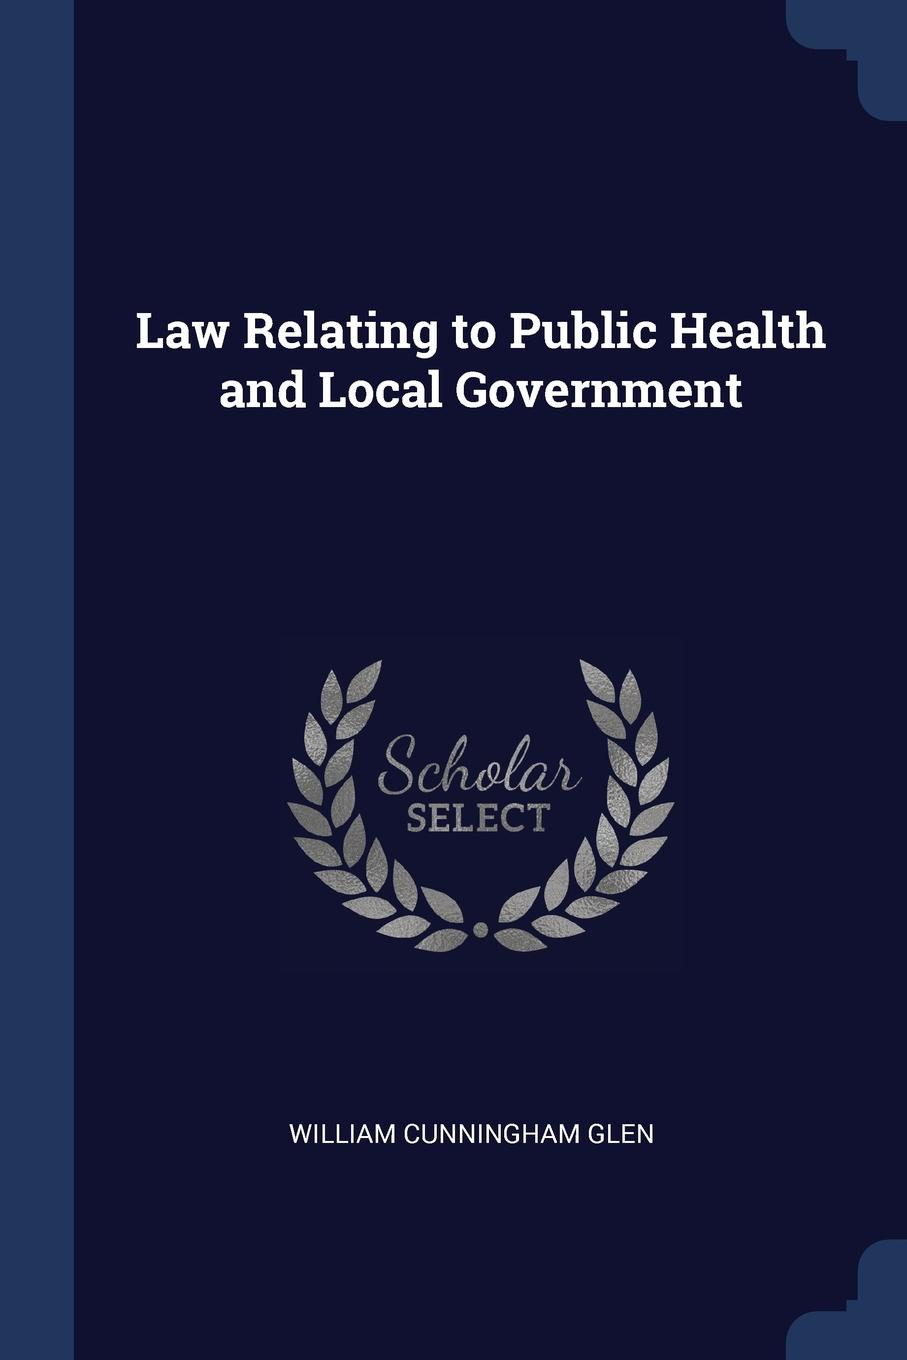 William Cunningham Glen Law Relating to Public Health and Local Government